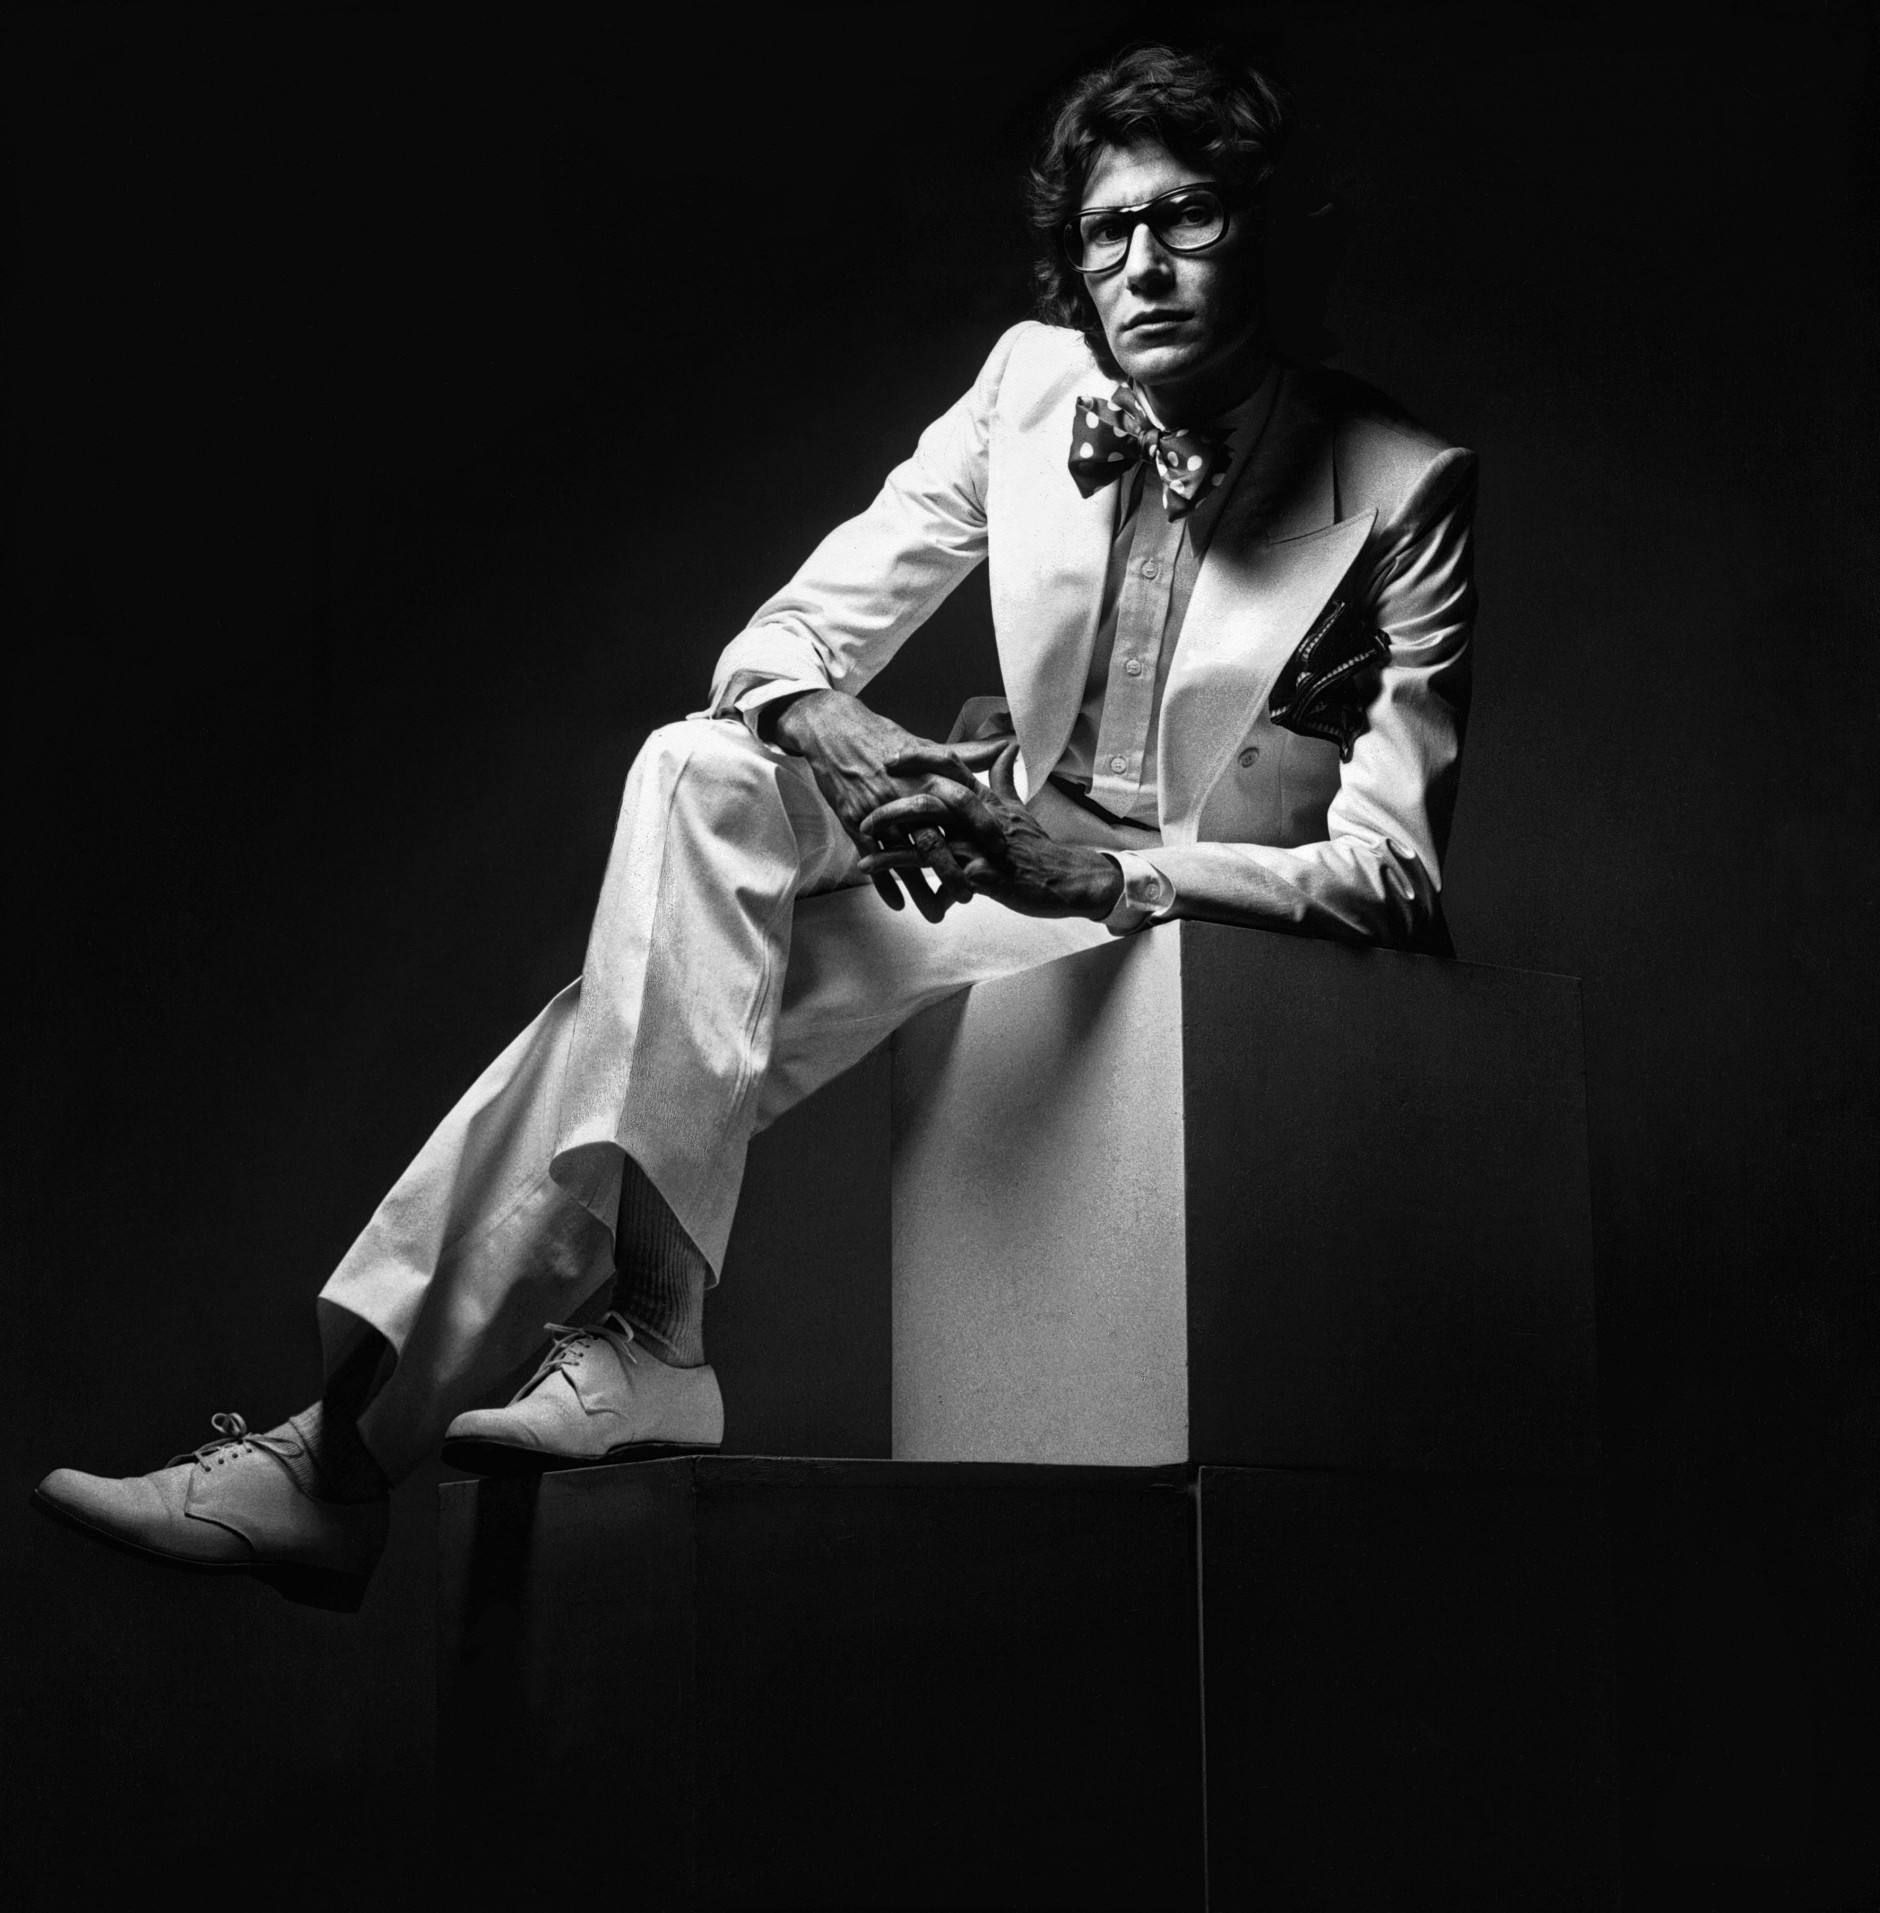 Jeanloup Sieff: Yves Saint Laurent, 1971. © The Estate of Jeanloup Sieff